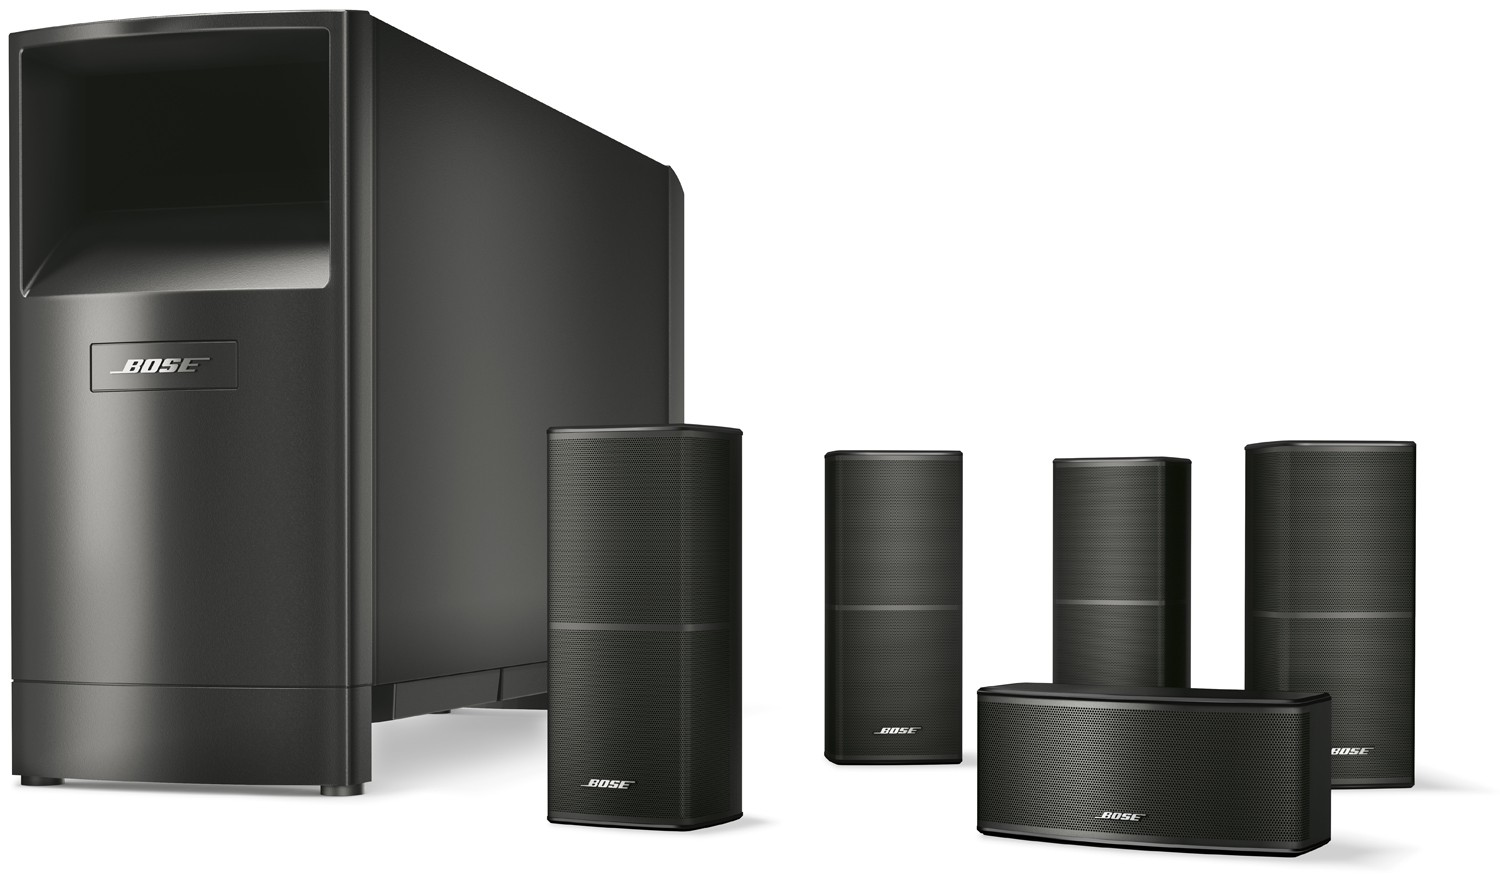 Bose Home Cinema Bose Acoustimass 10 Series V Am10 Black - Speakers - Bose